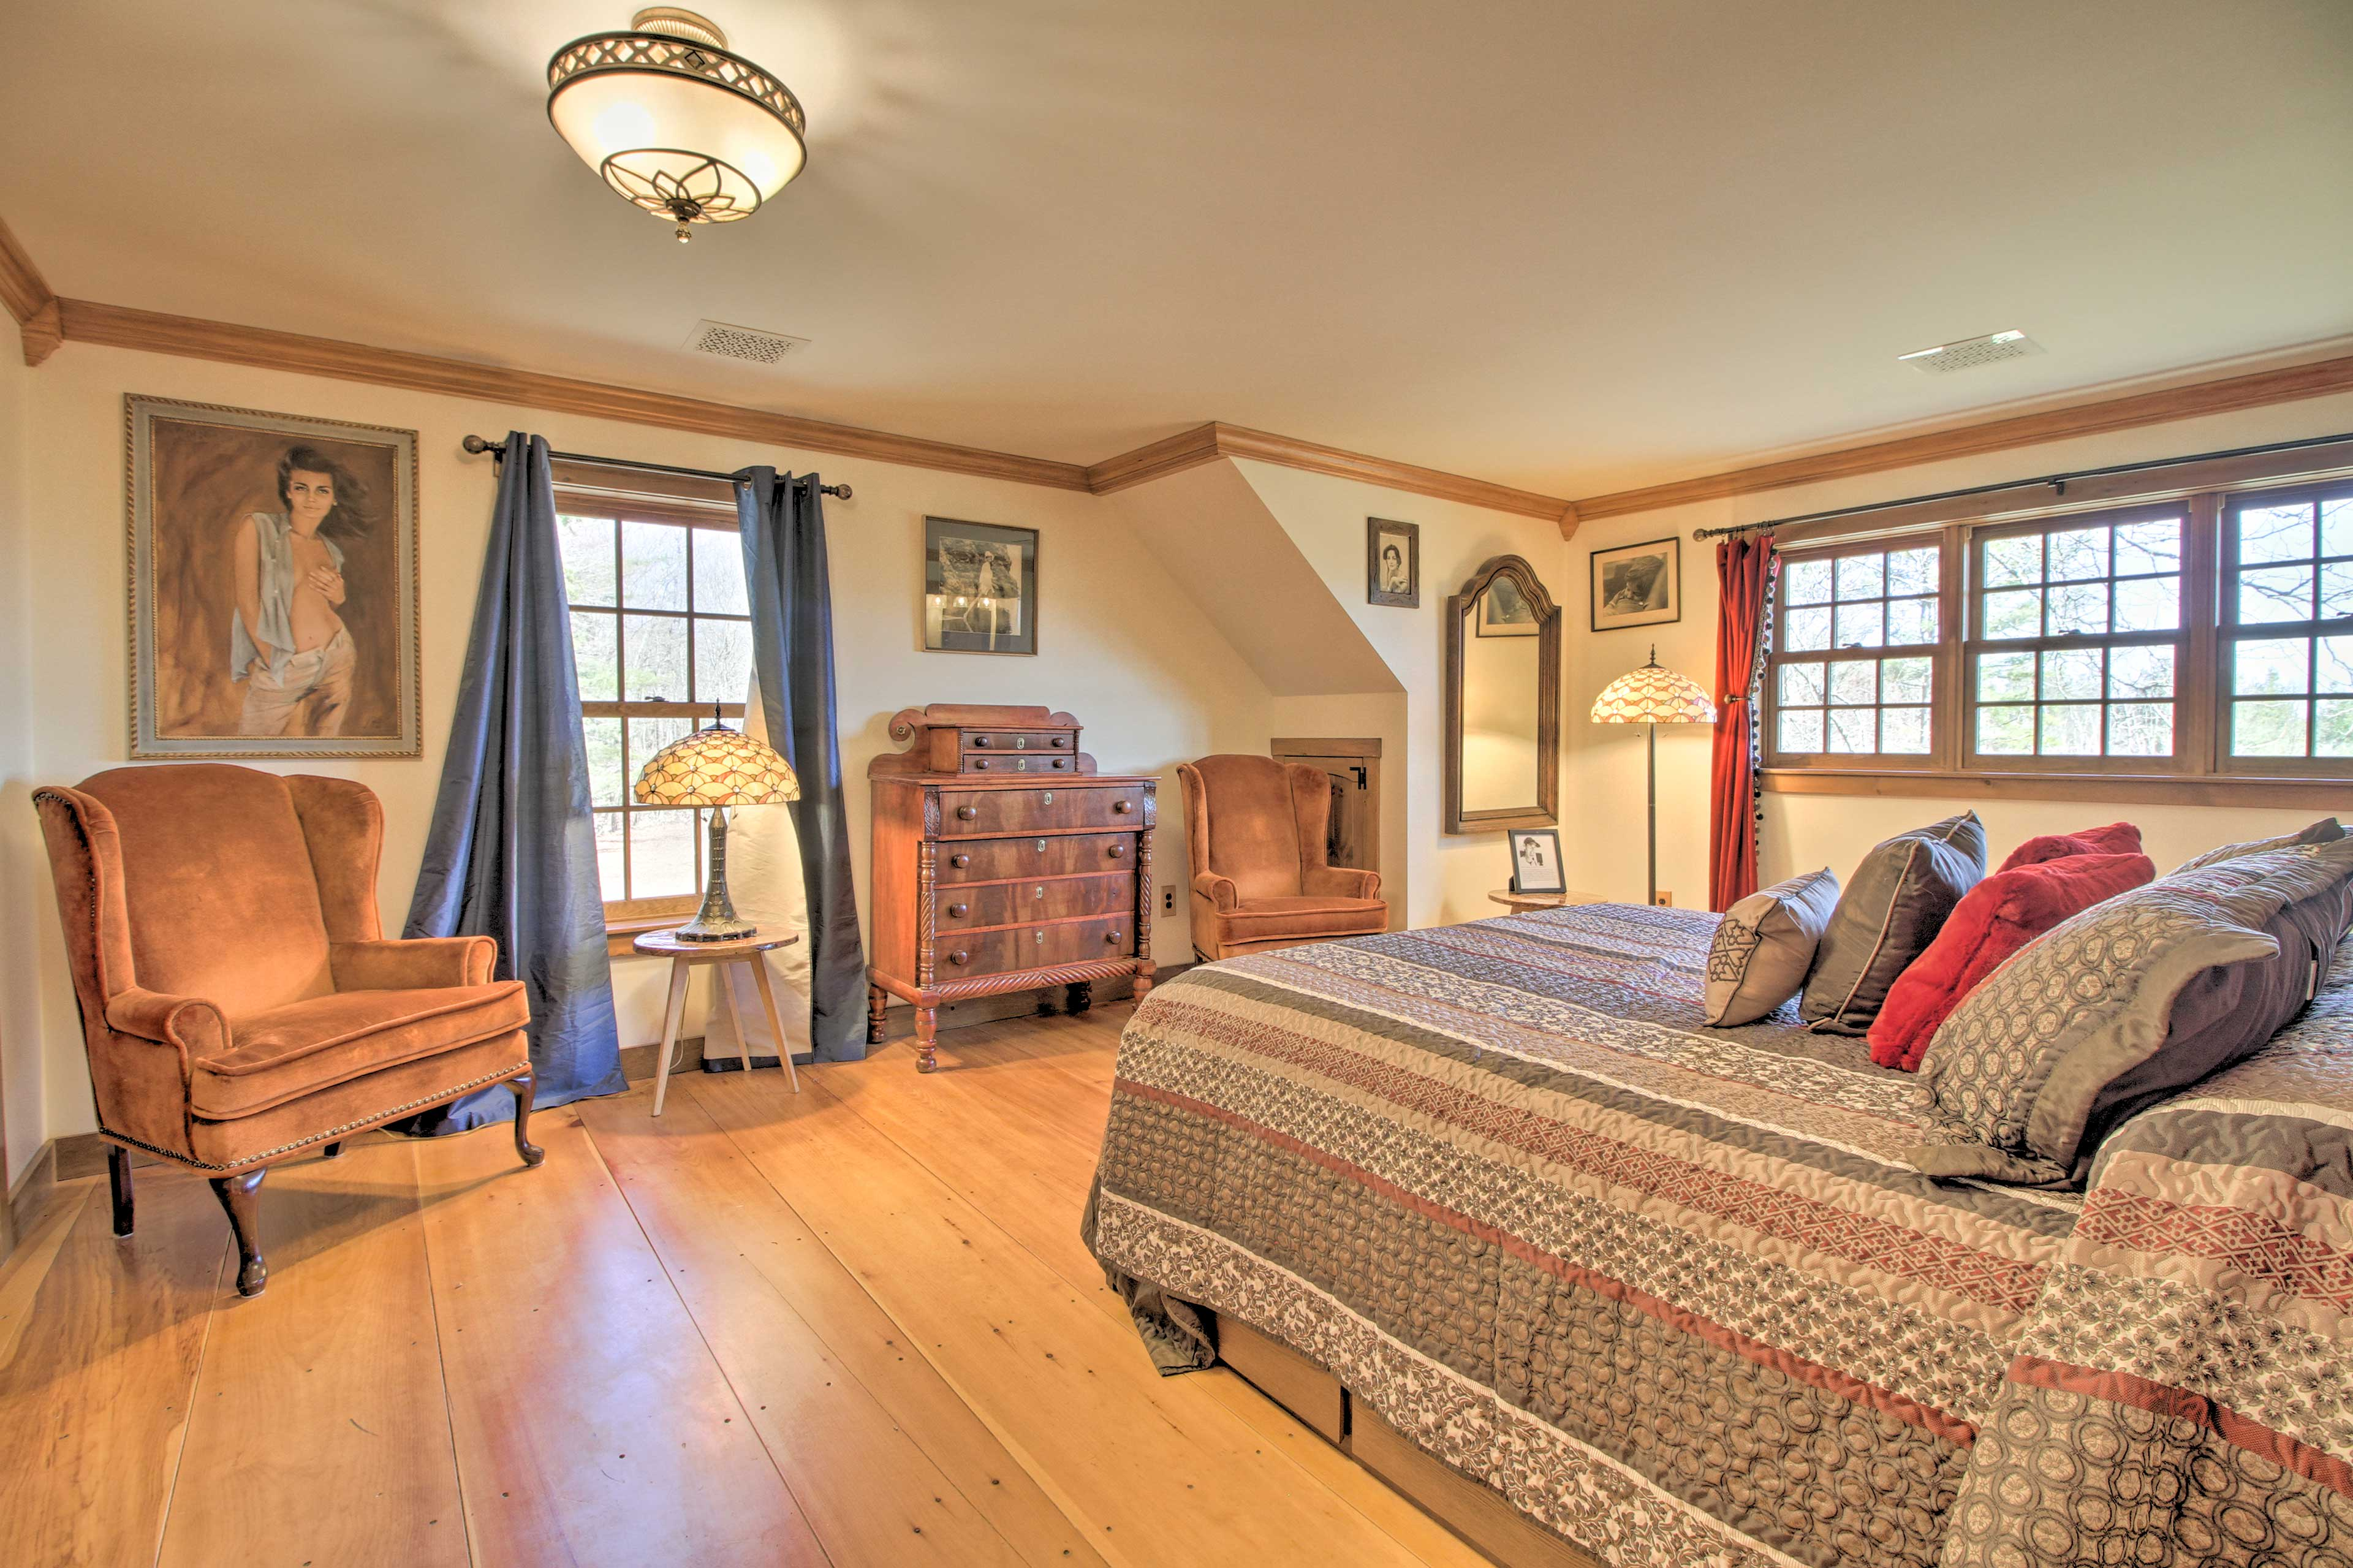 The Miss Vermont room has a king bed and Tiffany-style lamp.